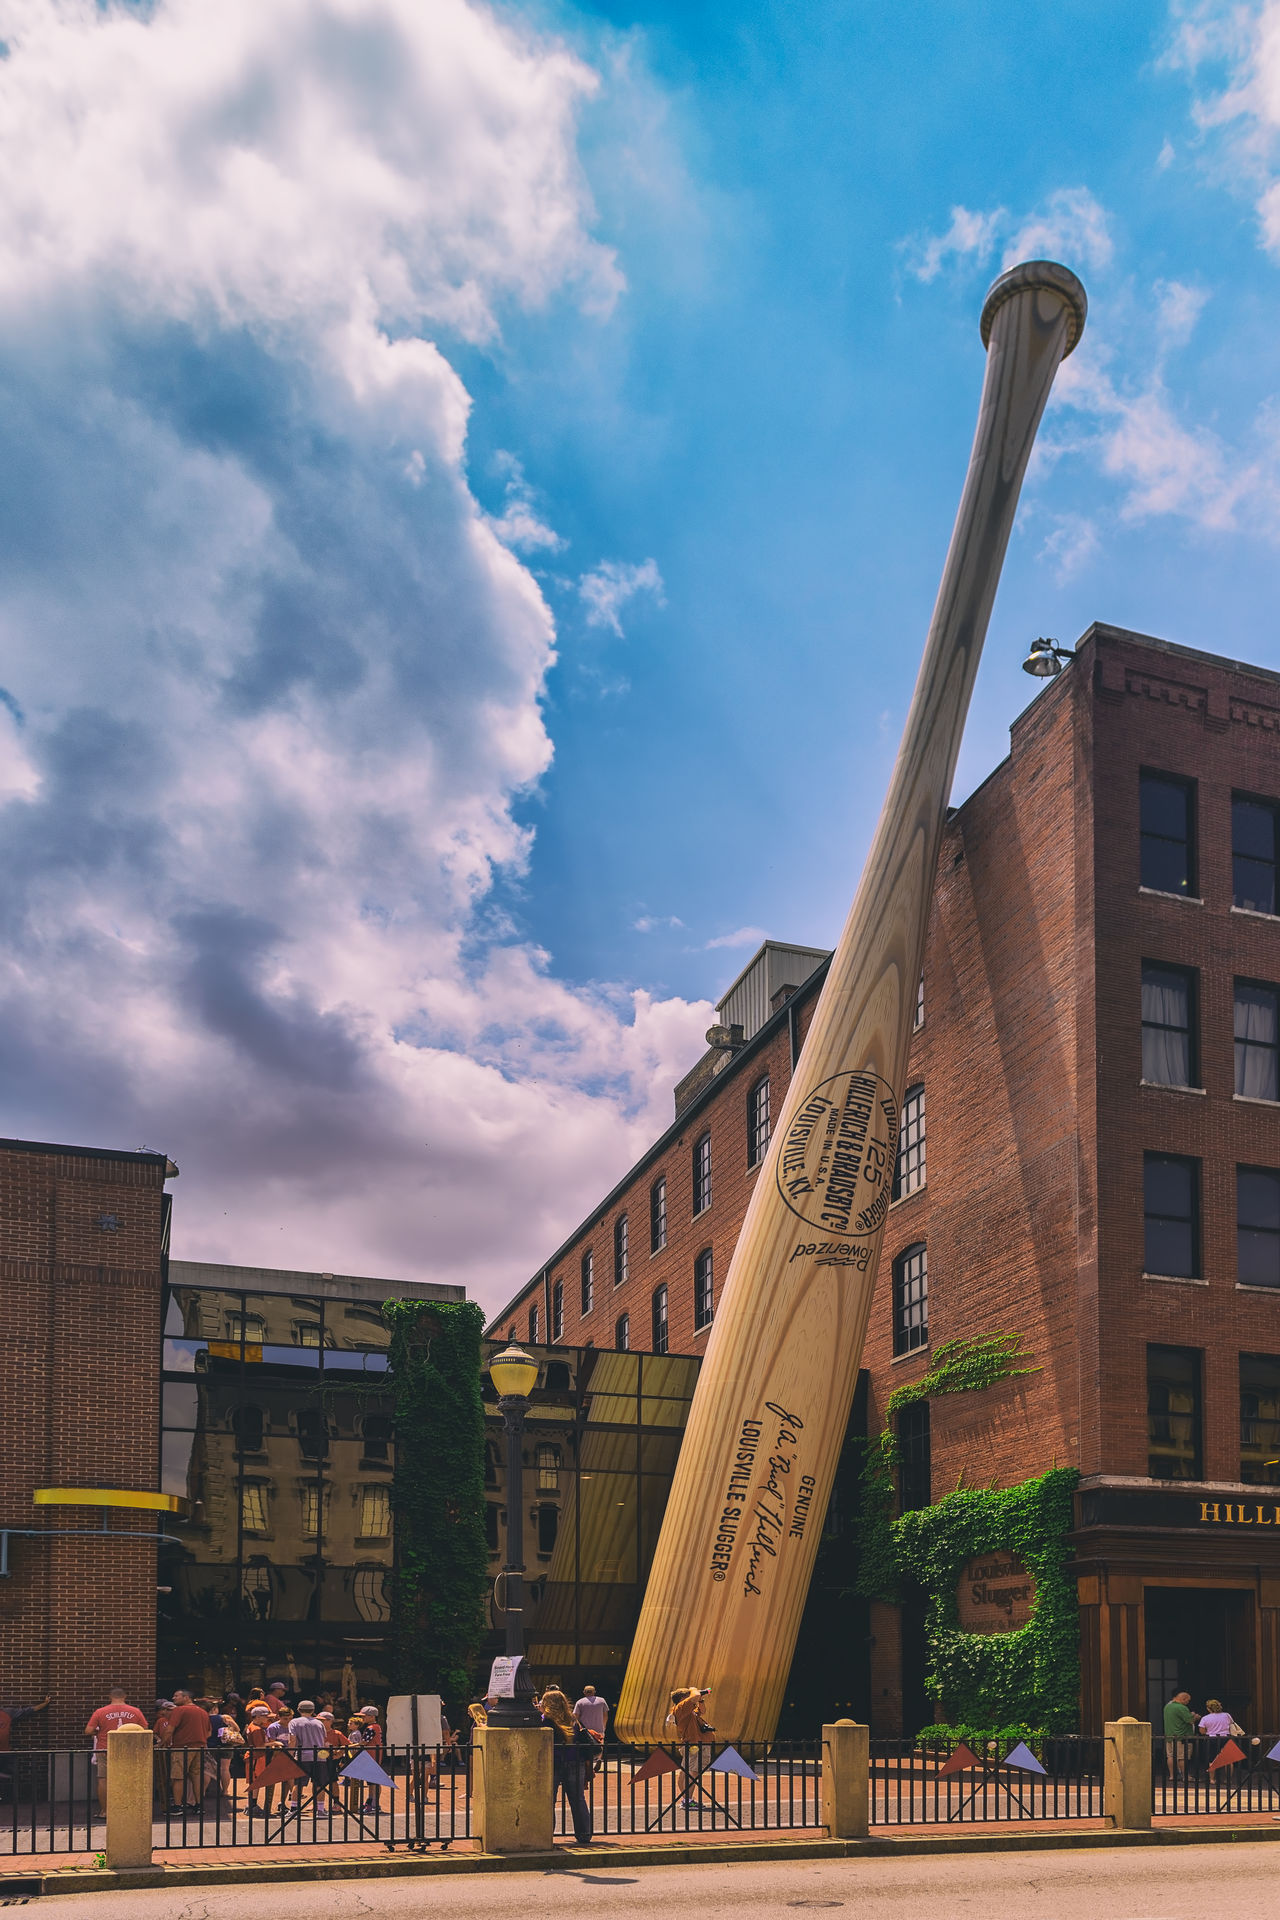 Louisville Slugger Museum & Factory Louisville, Kentuck Slugger Museum & Factory, Slugger Museum, Architecture Kentucky, USA Louisville MidWest USA Architecture Building Exterior Built Structure City Cloud - Sky Day Outdoors Real People Sky